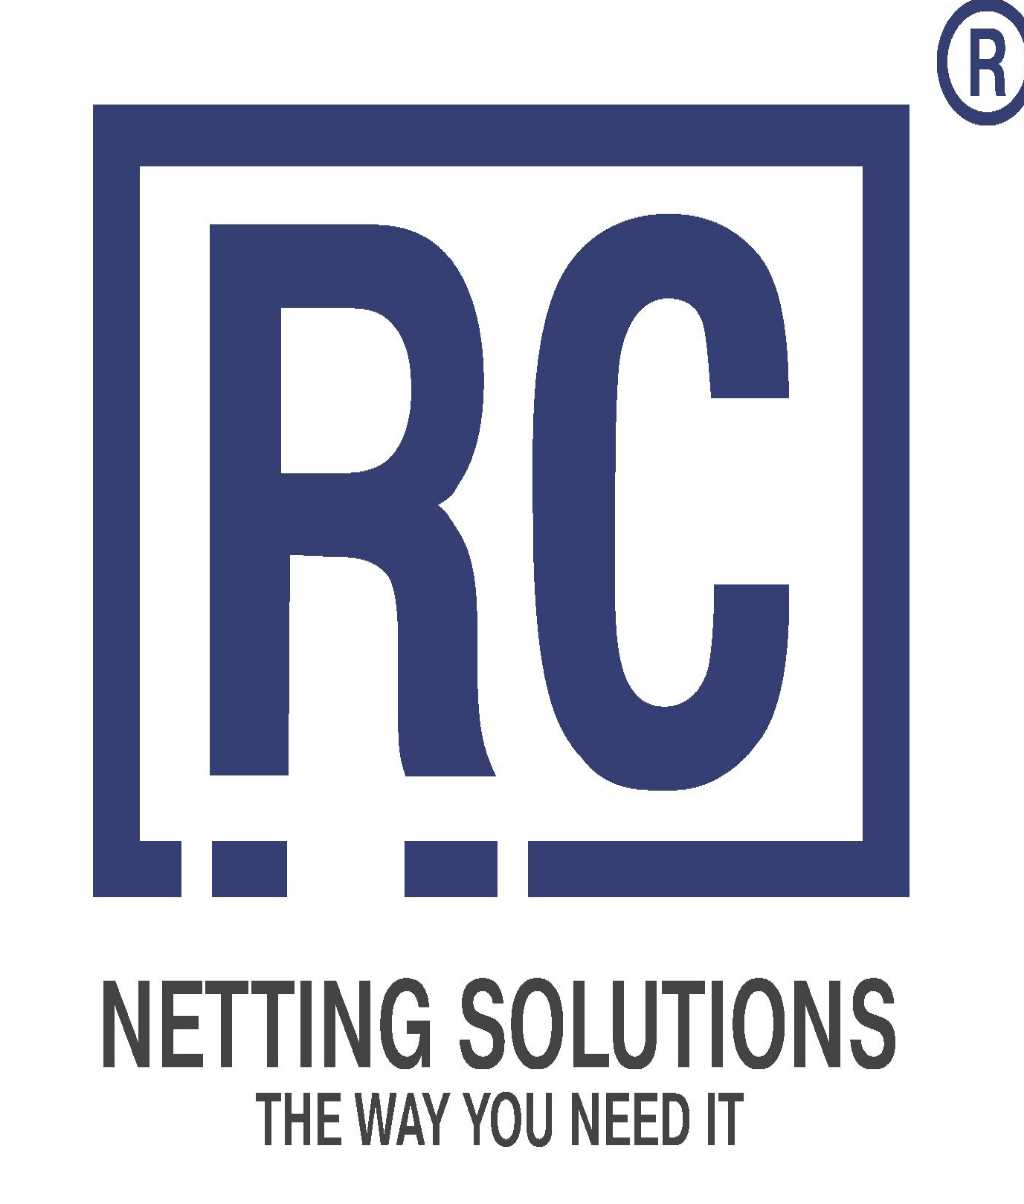 RC NETTING SOLUTIONS